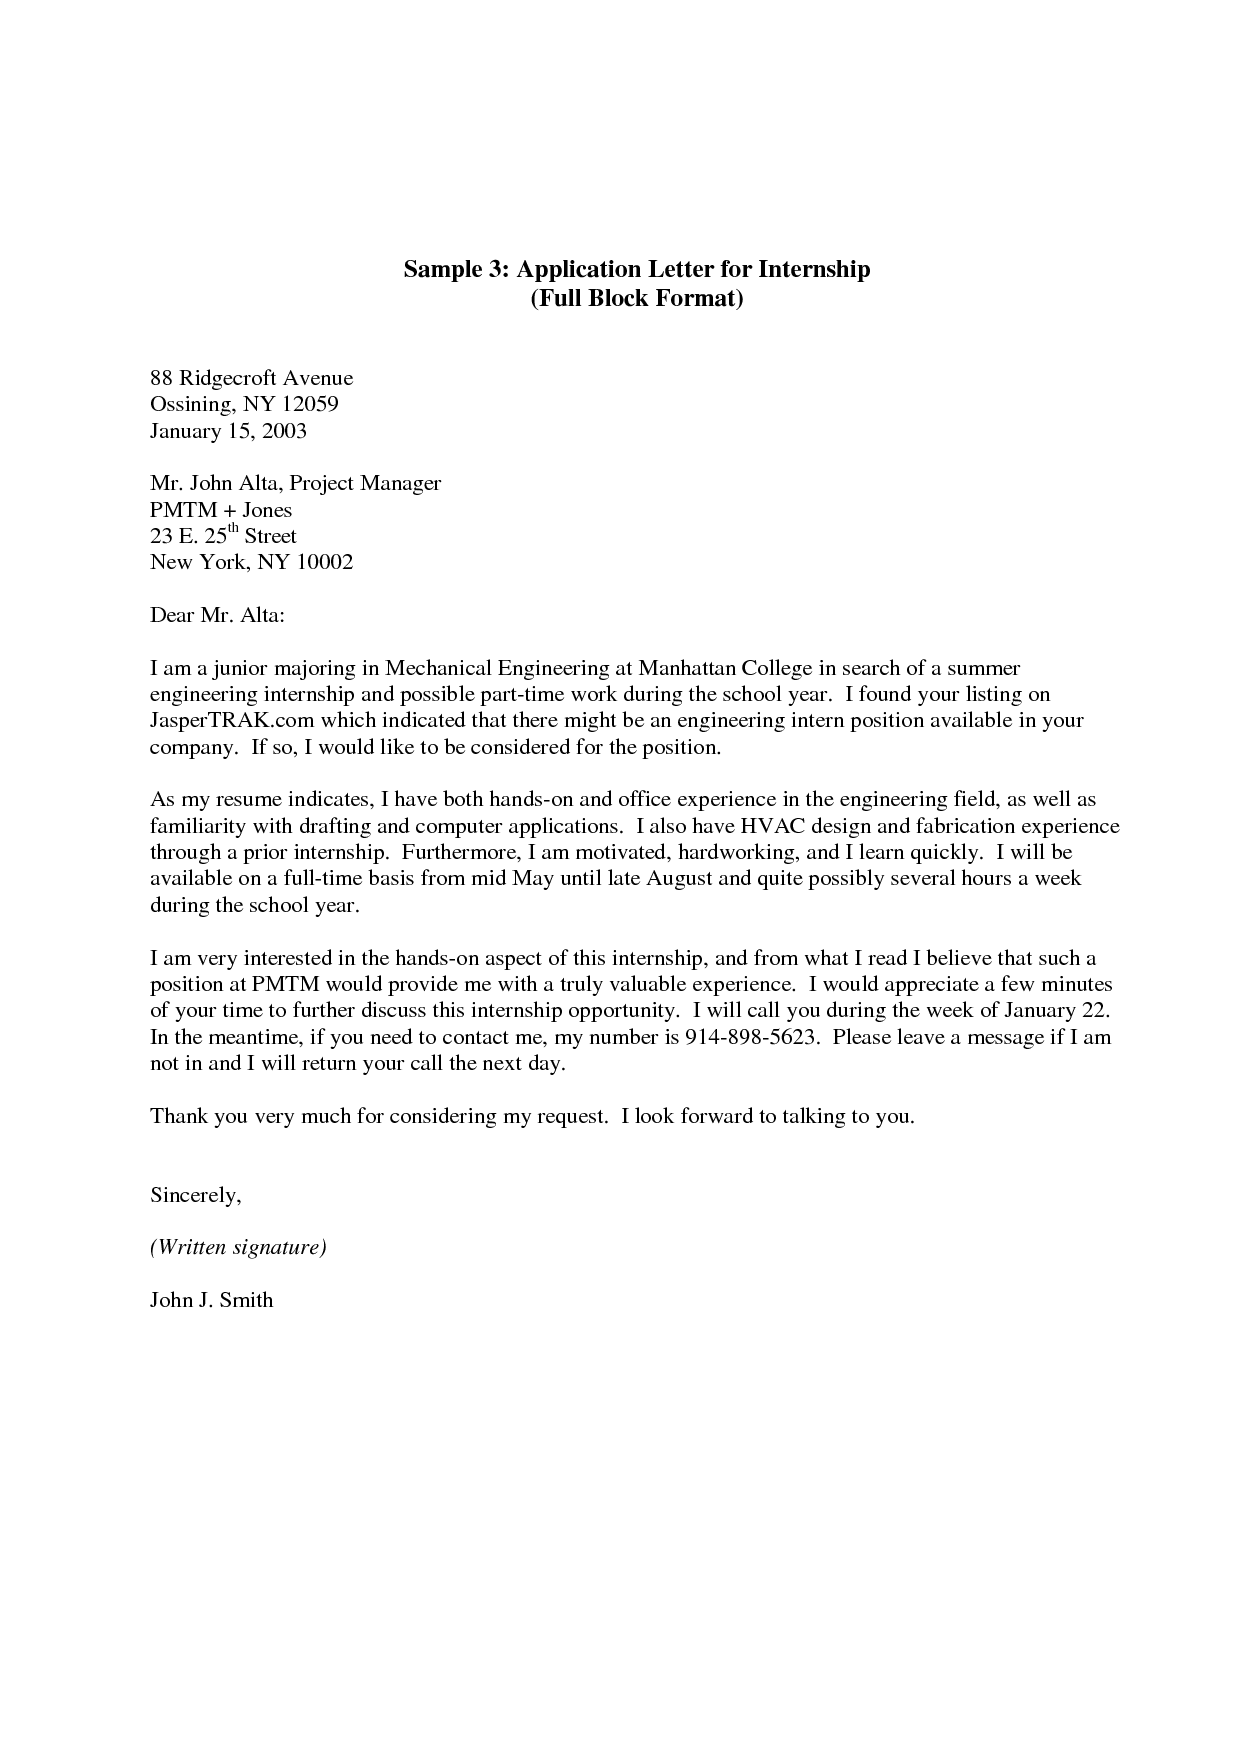 Pin by zuby on Application Letters  Cover letter for internship